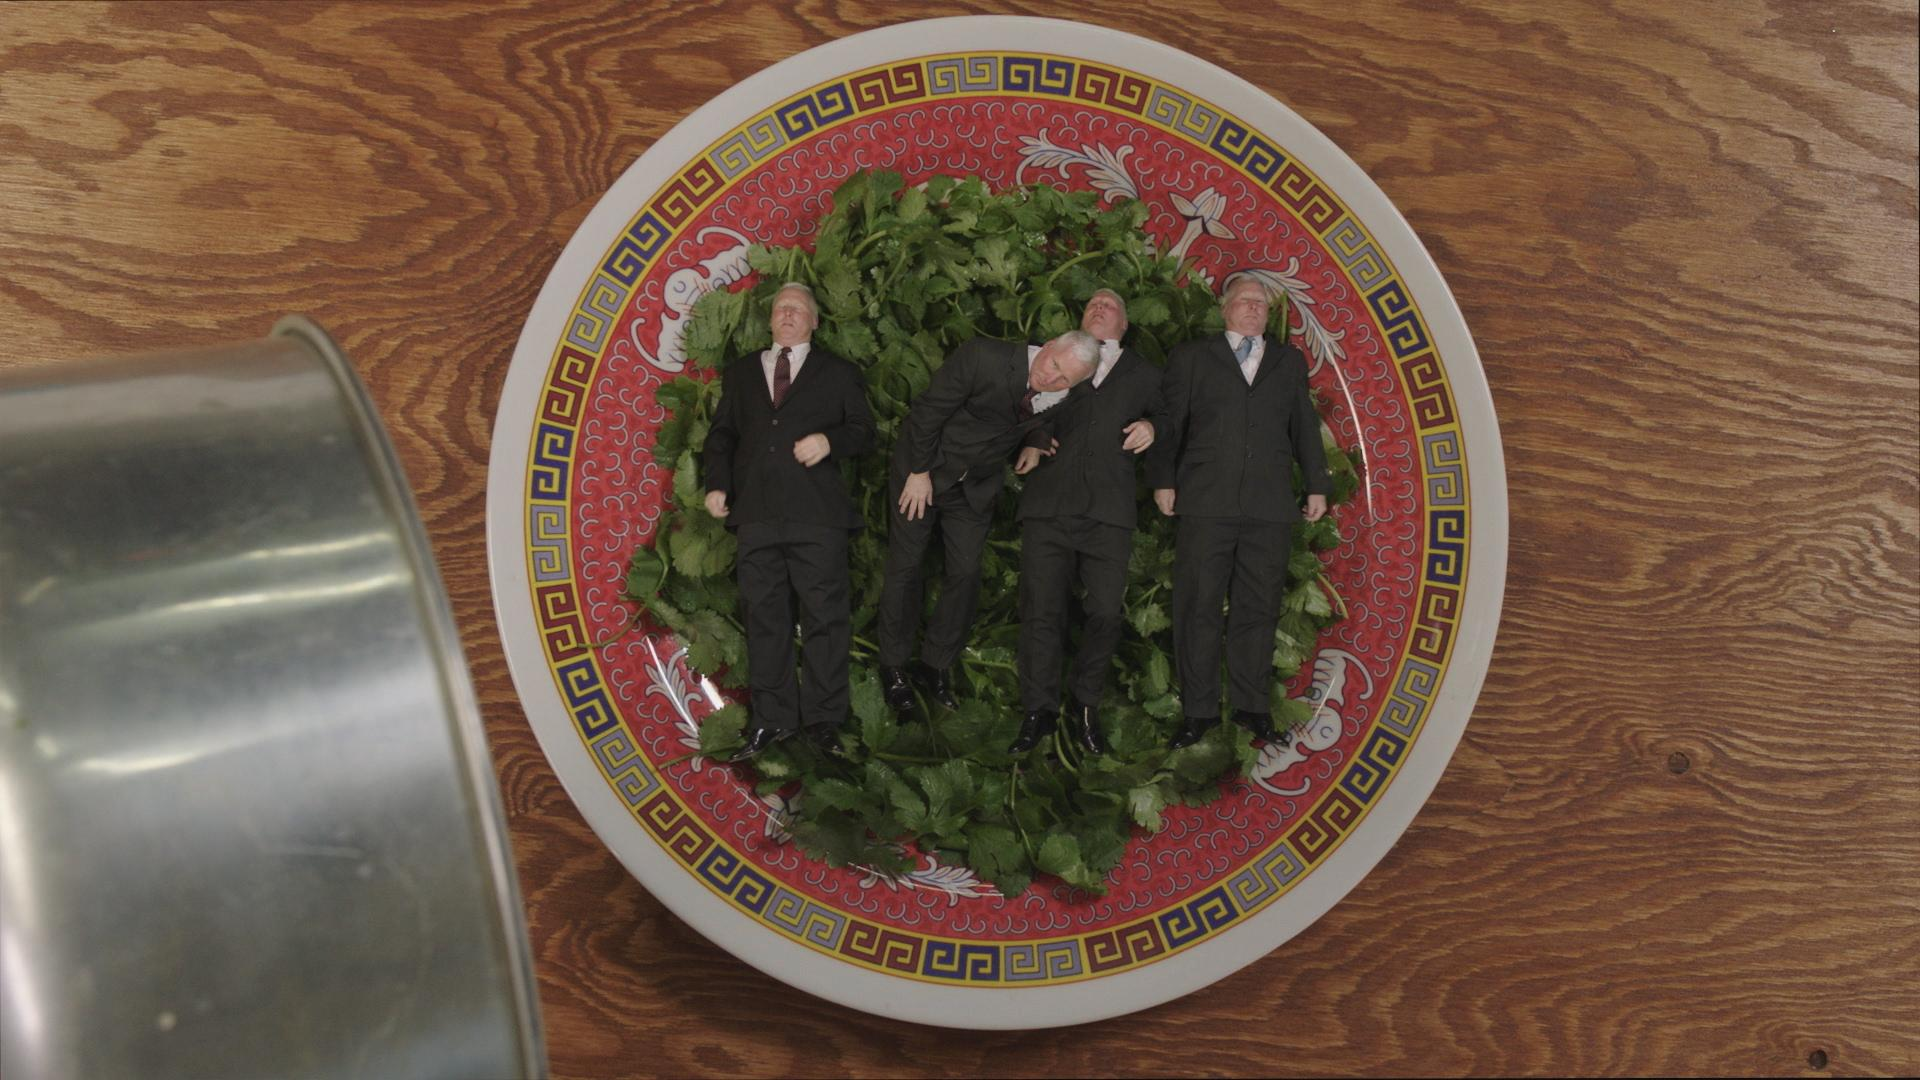 An ornately decorated plate holds a hearty serving of green herbs. Atop the herbs, four gray-haired men in suits lay side-by-side.